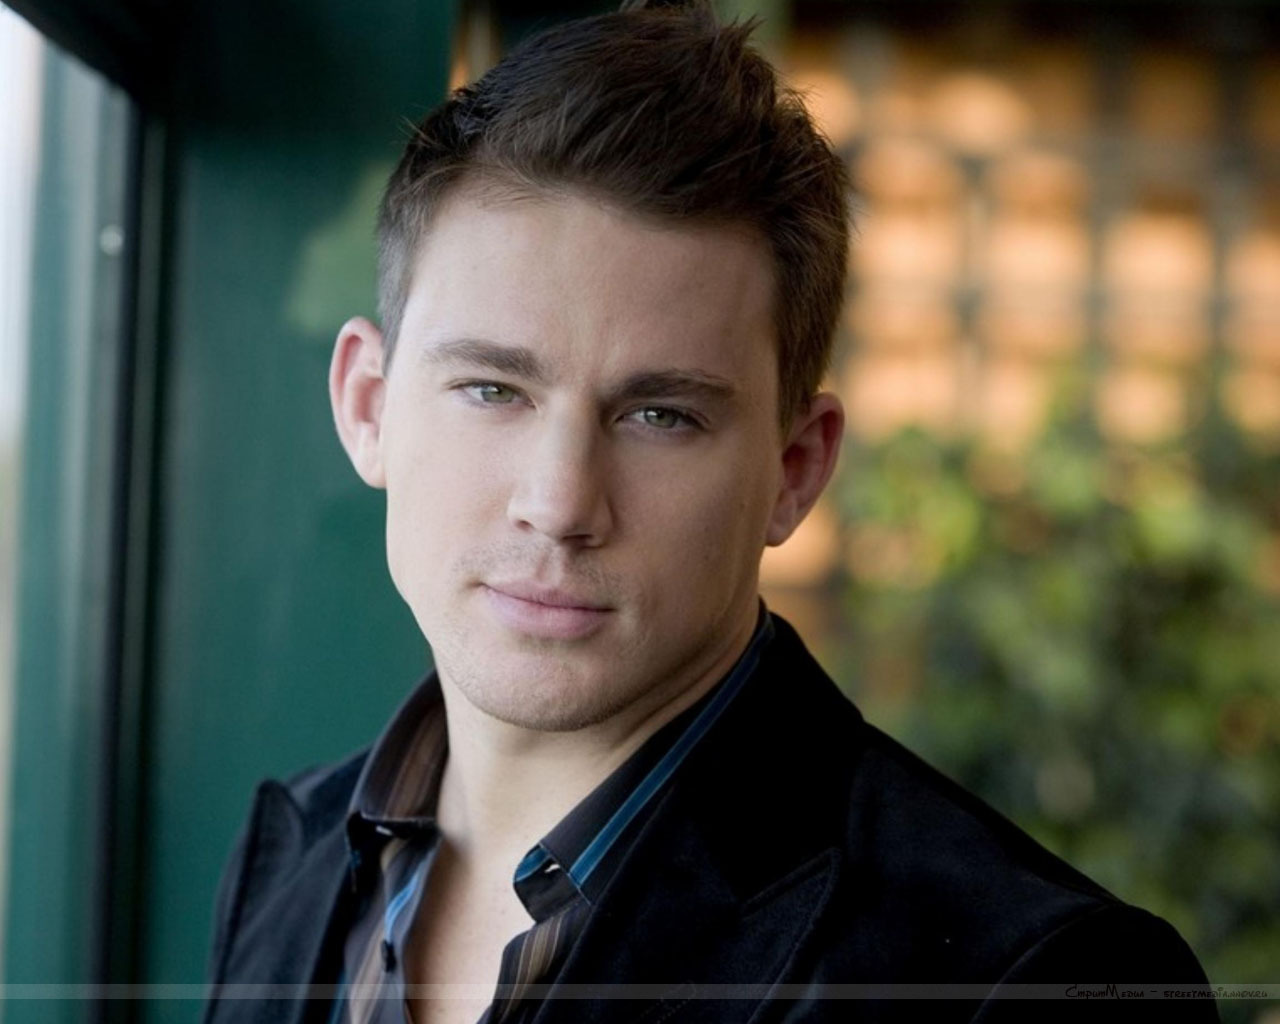 Channing Tatum Workout Routine Channing Tatum